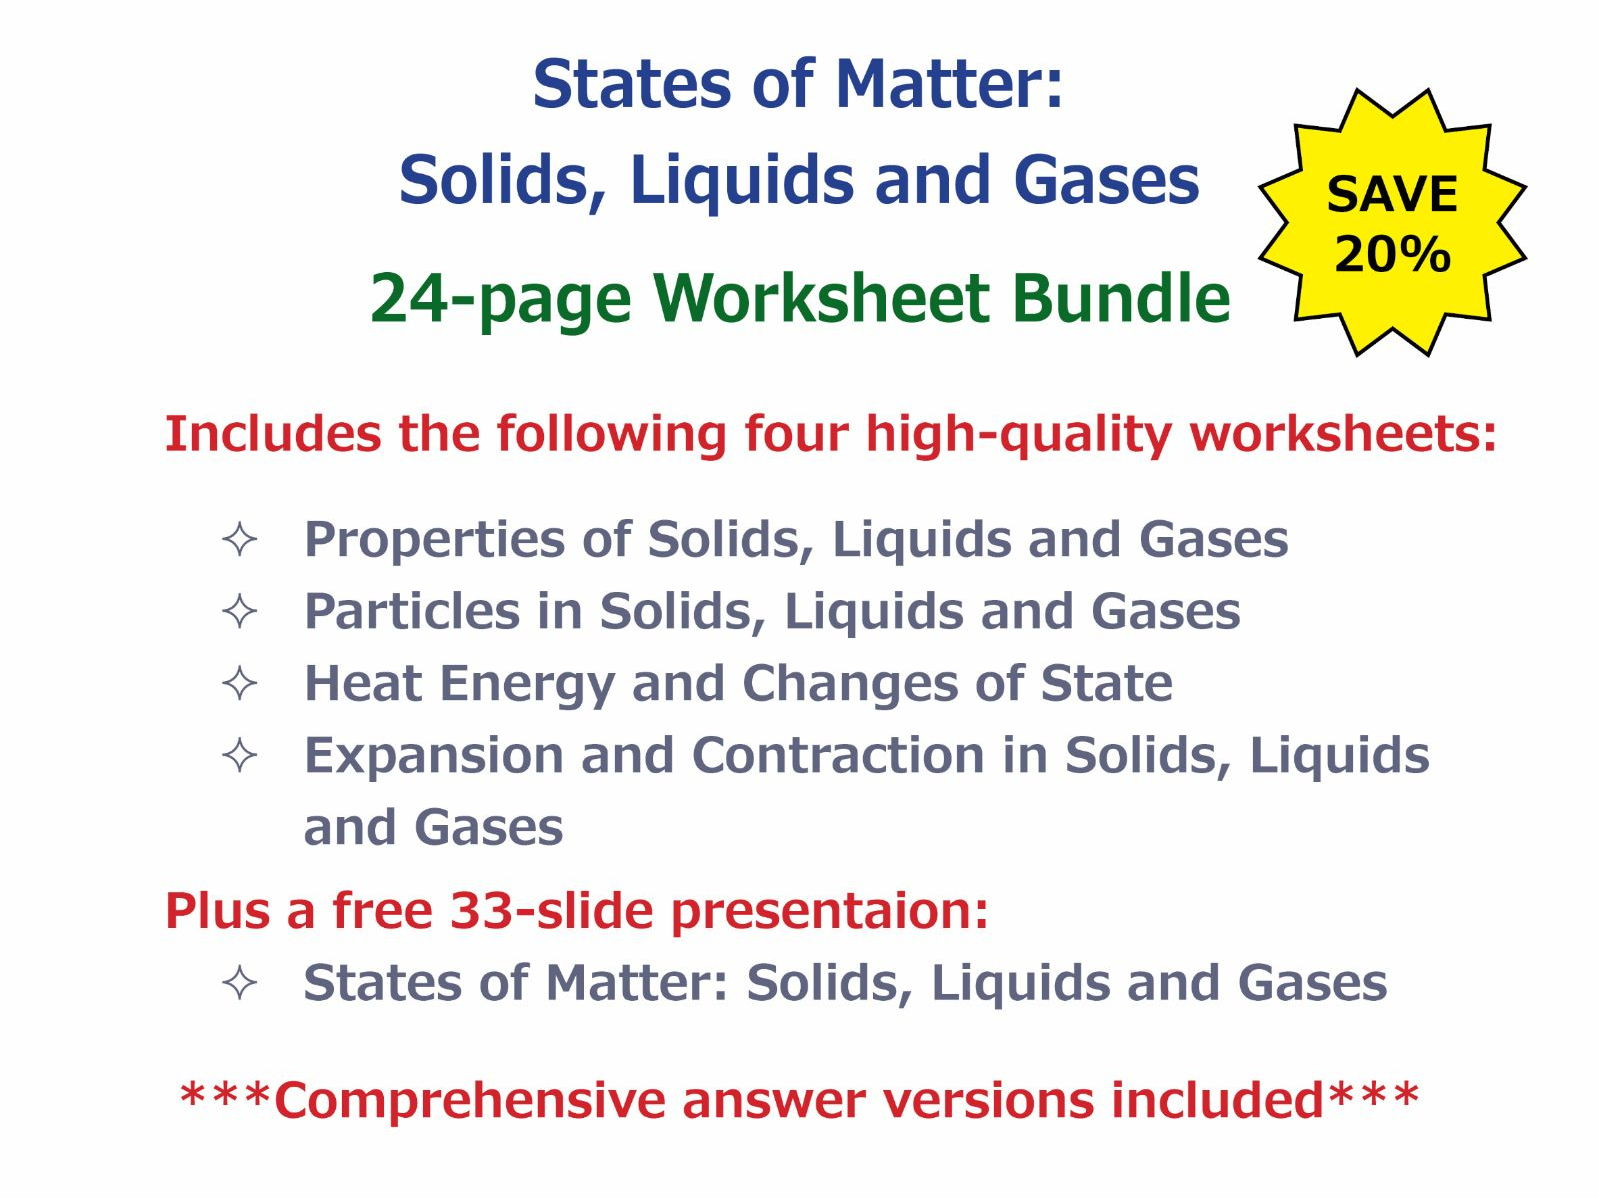 states of matter solids liquids and gases worksheet bundle by goodscienceworksheets. Black Bedroom Furniture Sets. Home Design Ideas